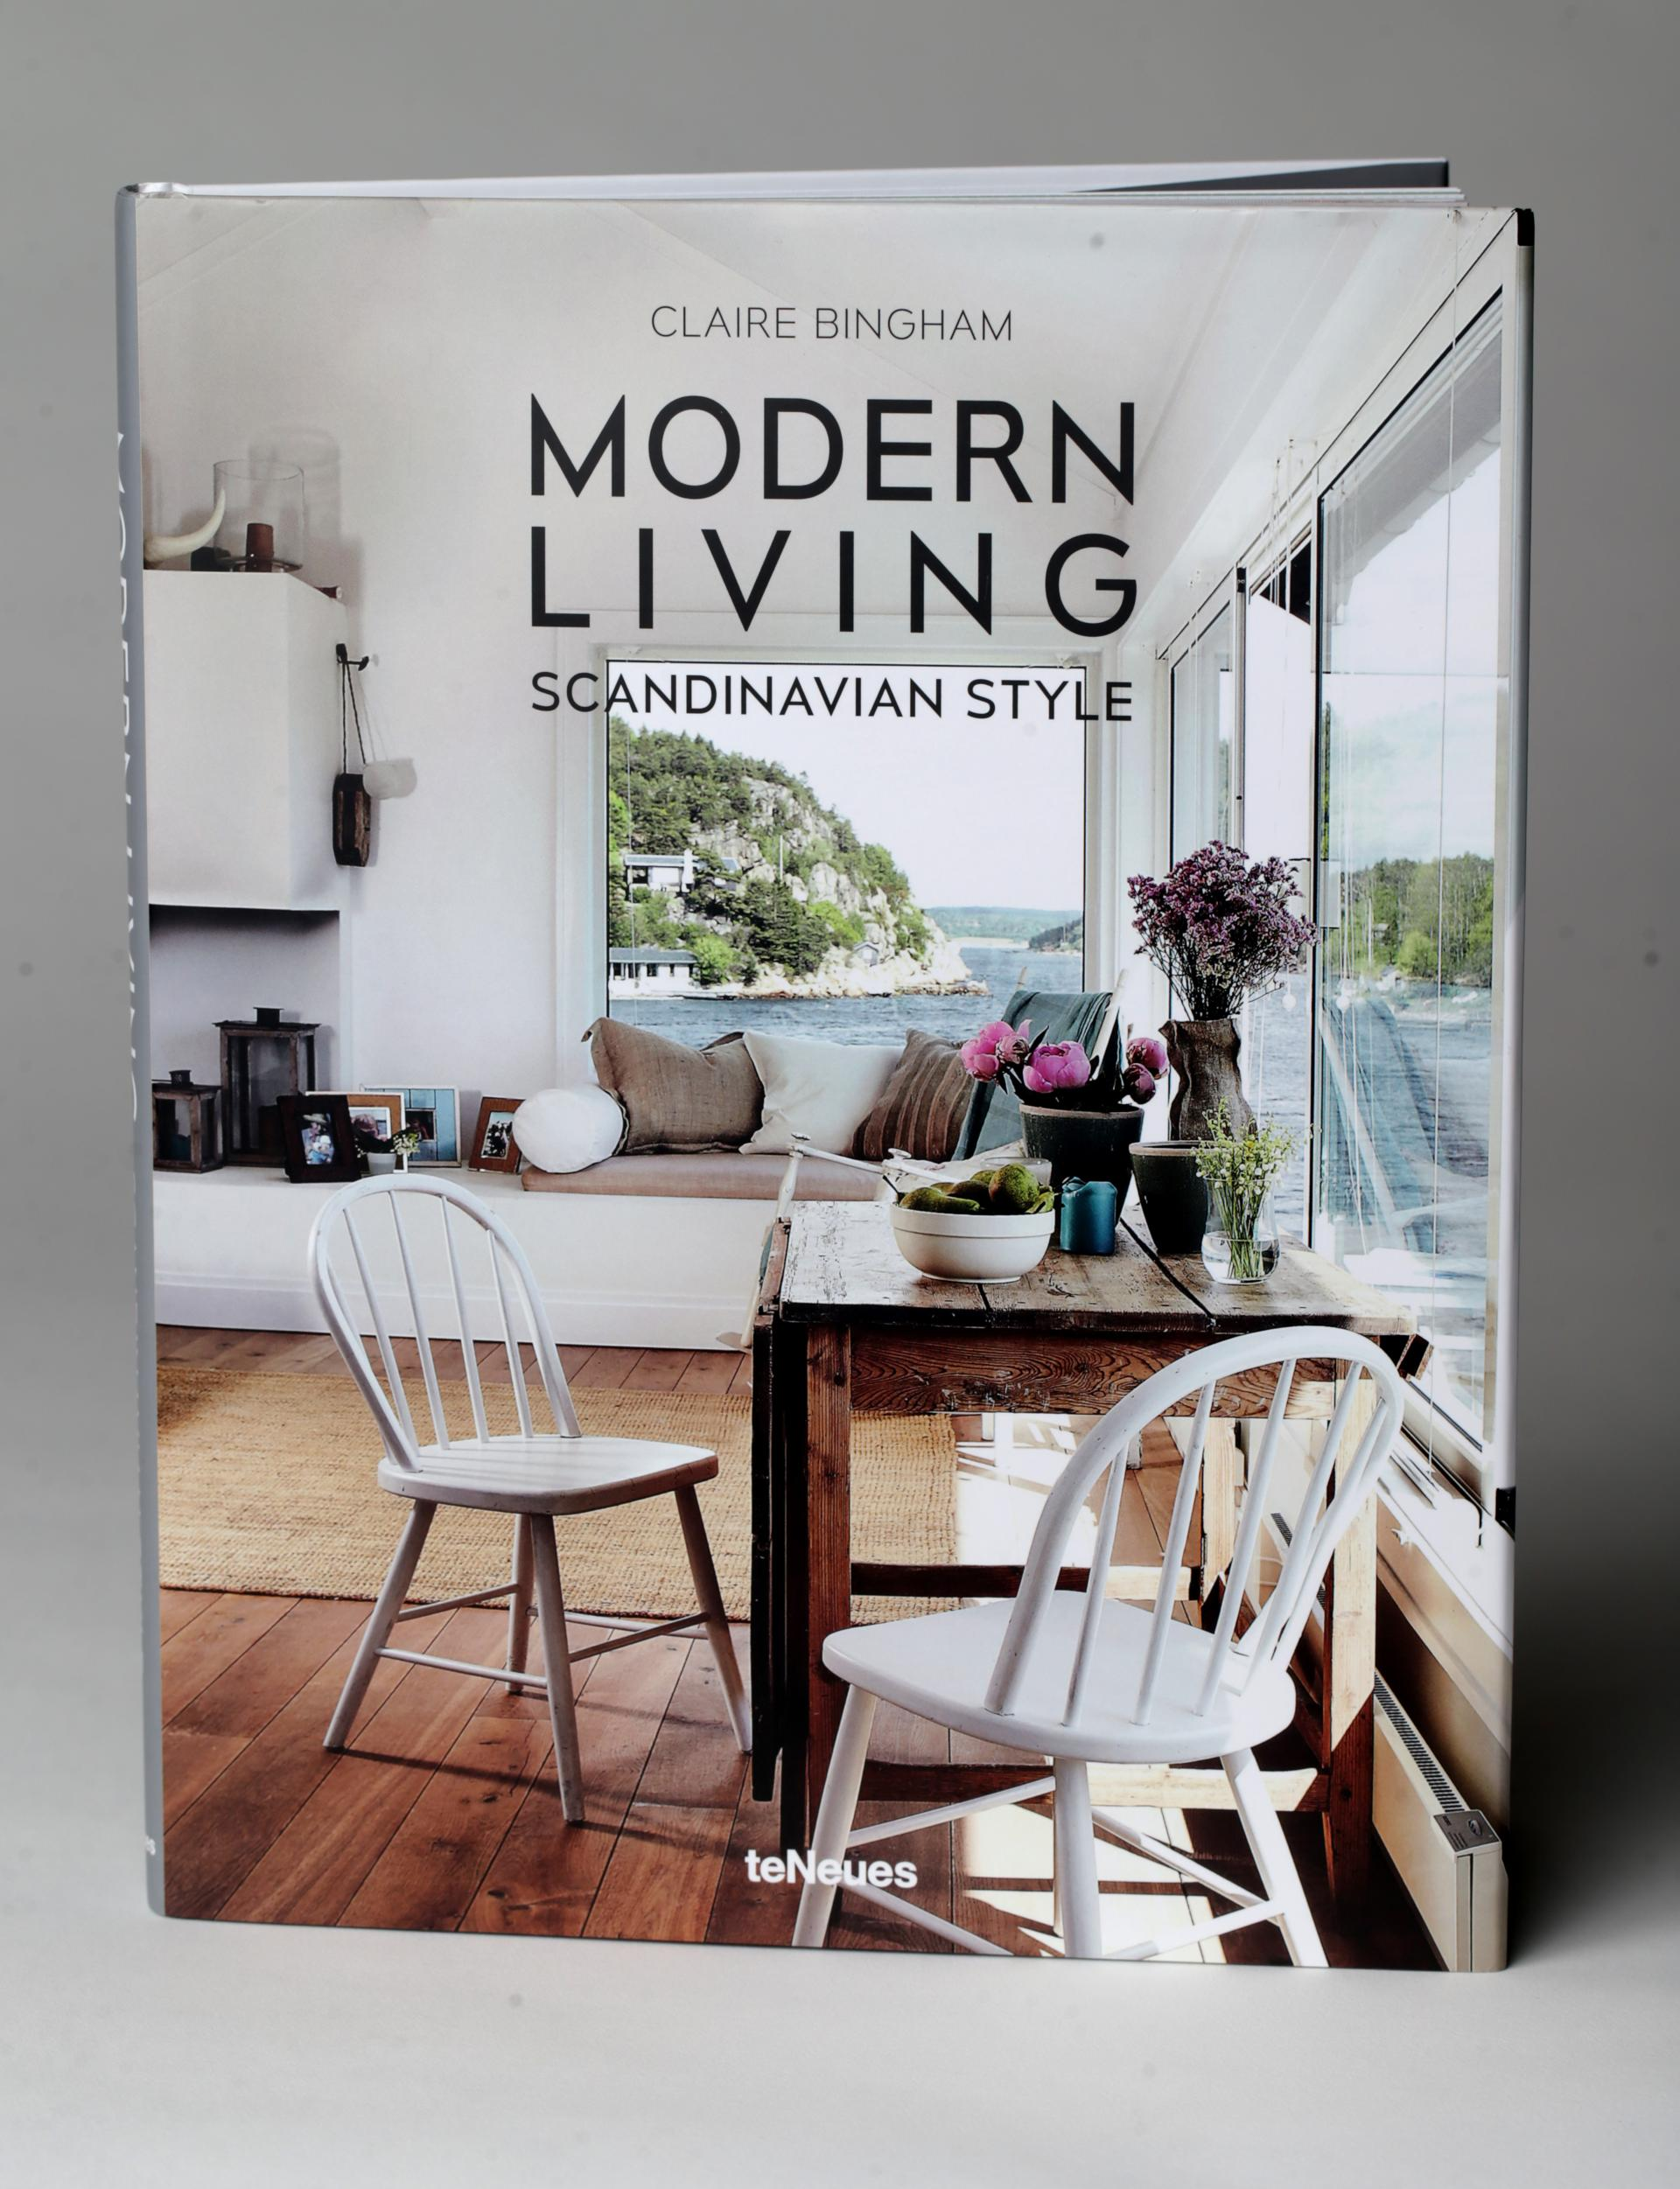 New Home Design And Gardening Books To Gift